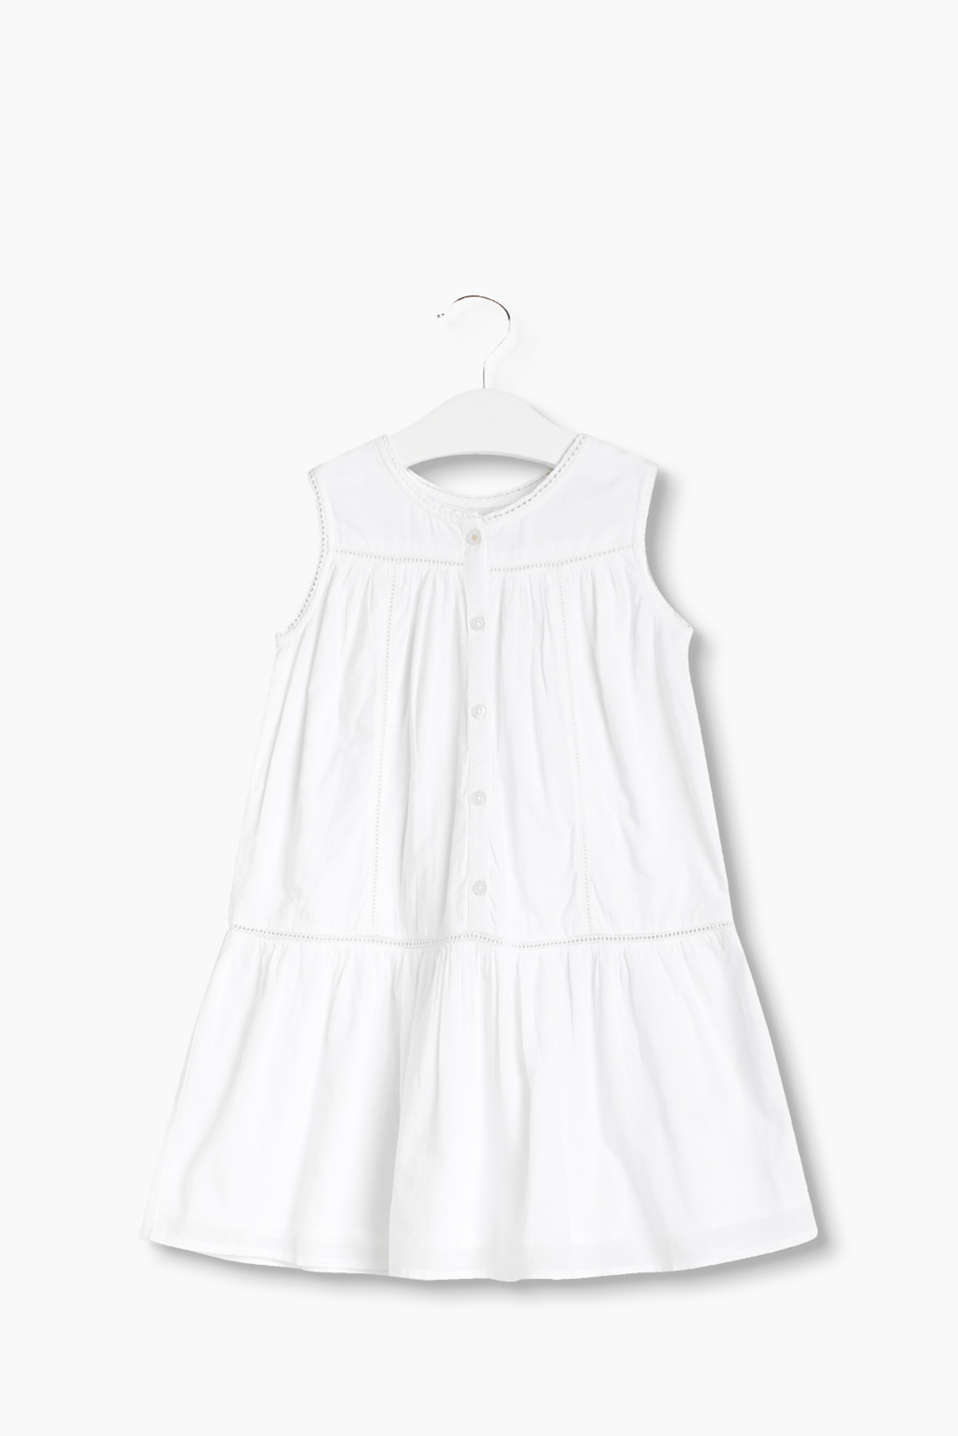 Light and airy cotton dress with a button placket and broderie anglaise in a vest top style